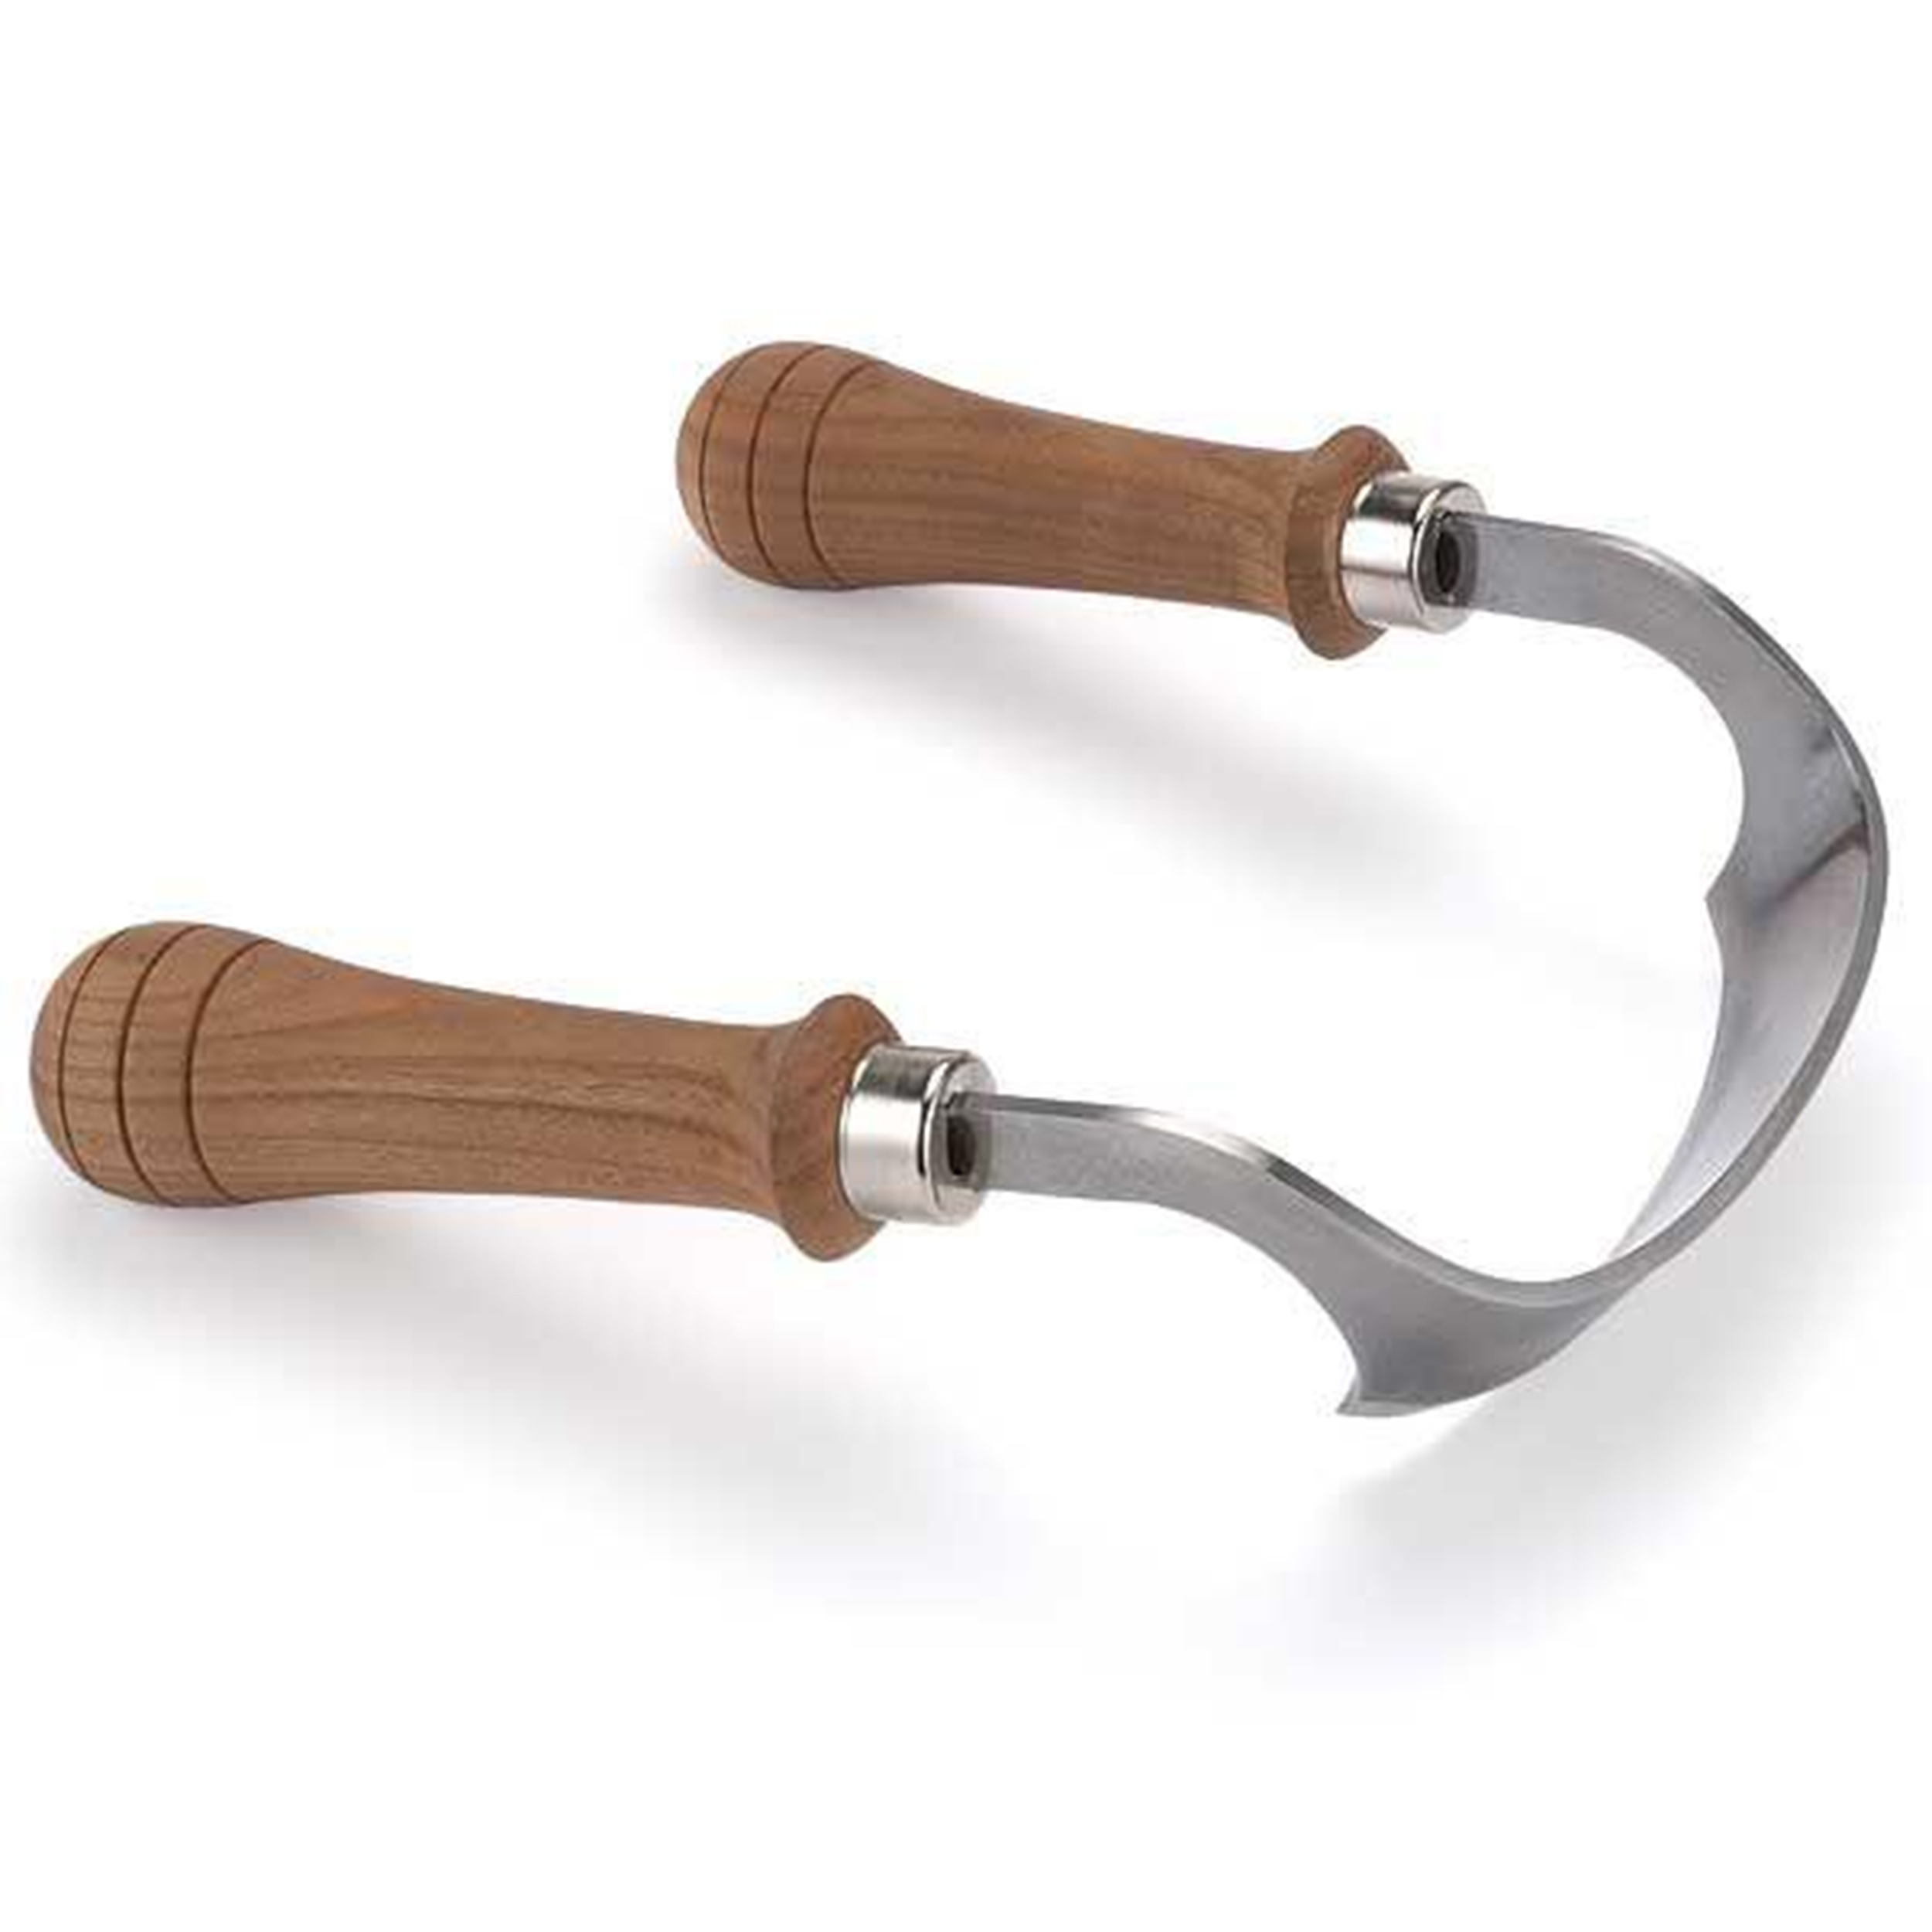 Double Handled Scorp, 160 mm